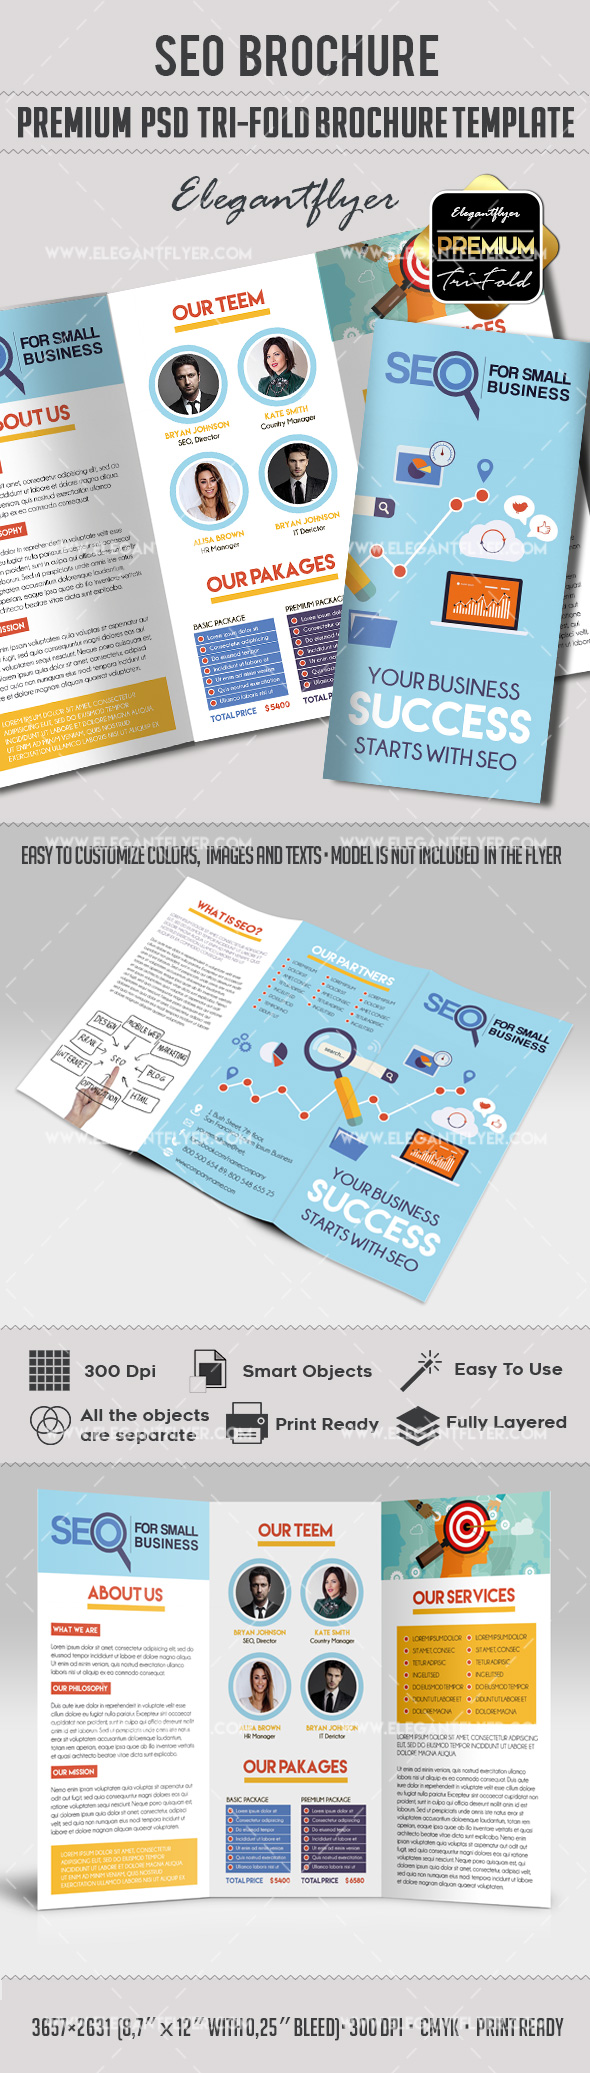 Tri-Fold Brochure Printable for SEO